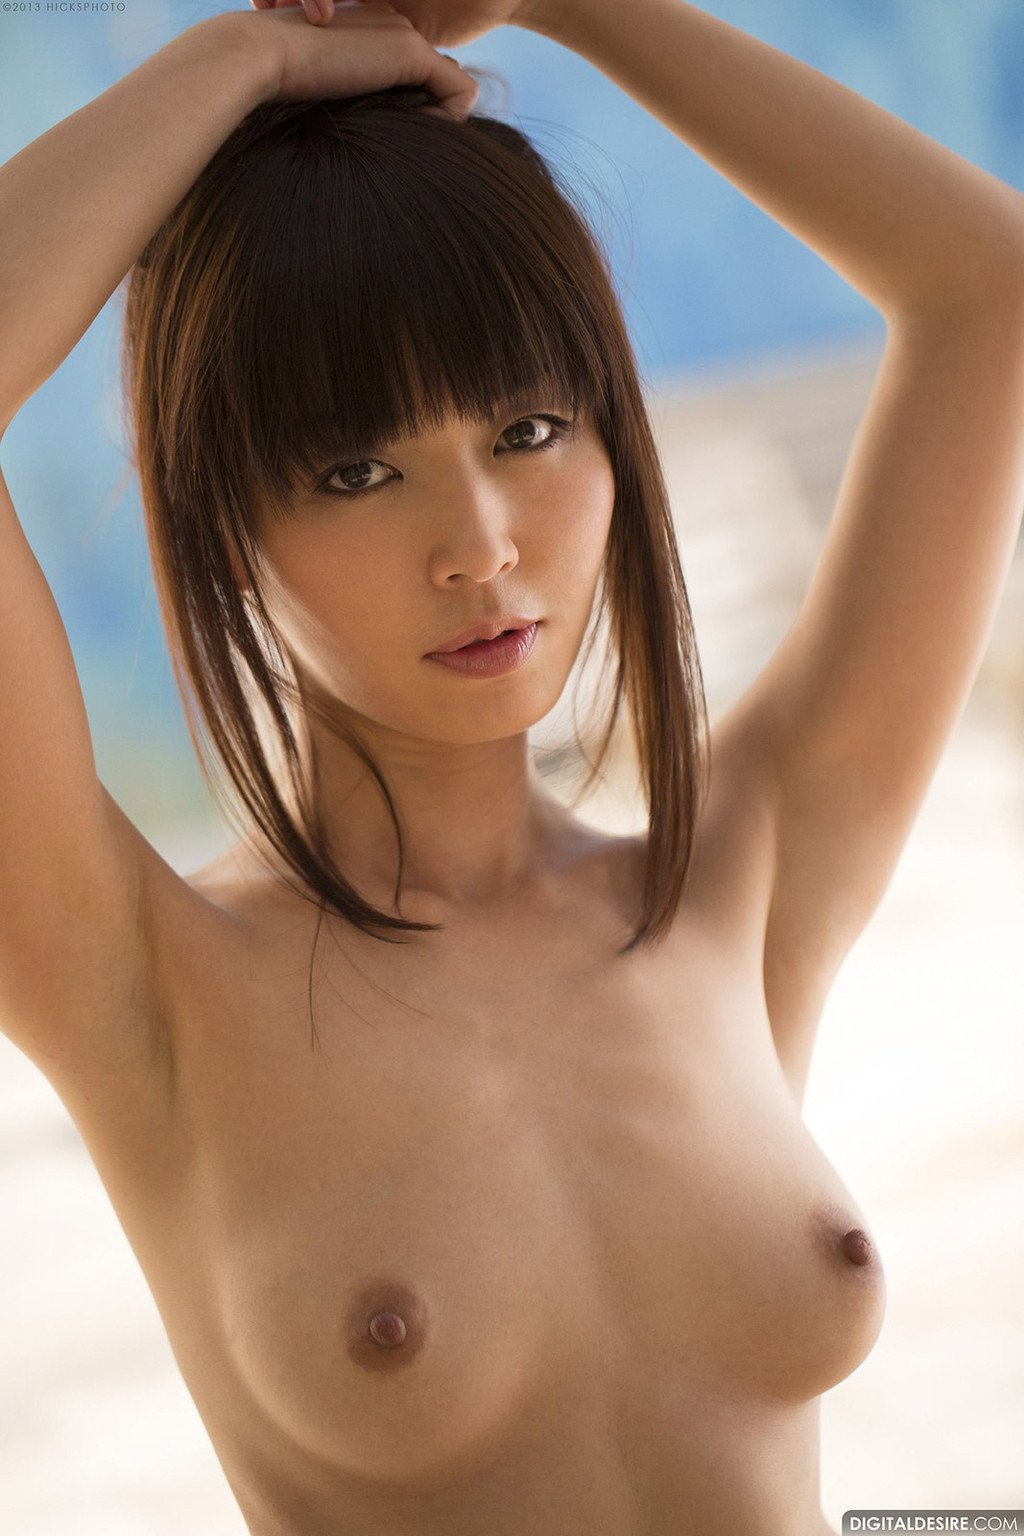 Desire japanese girl nude, young looking porn